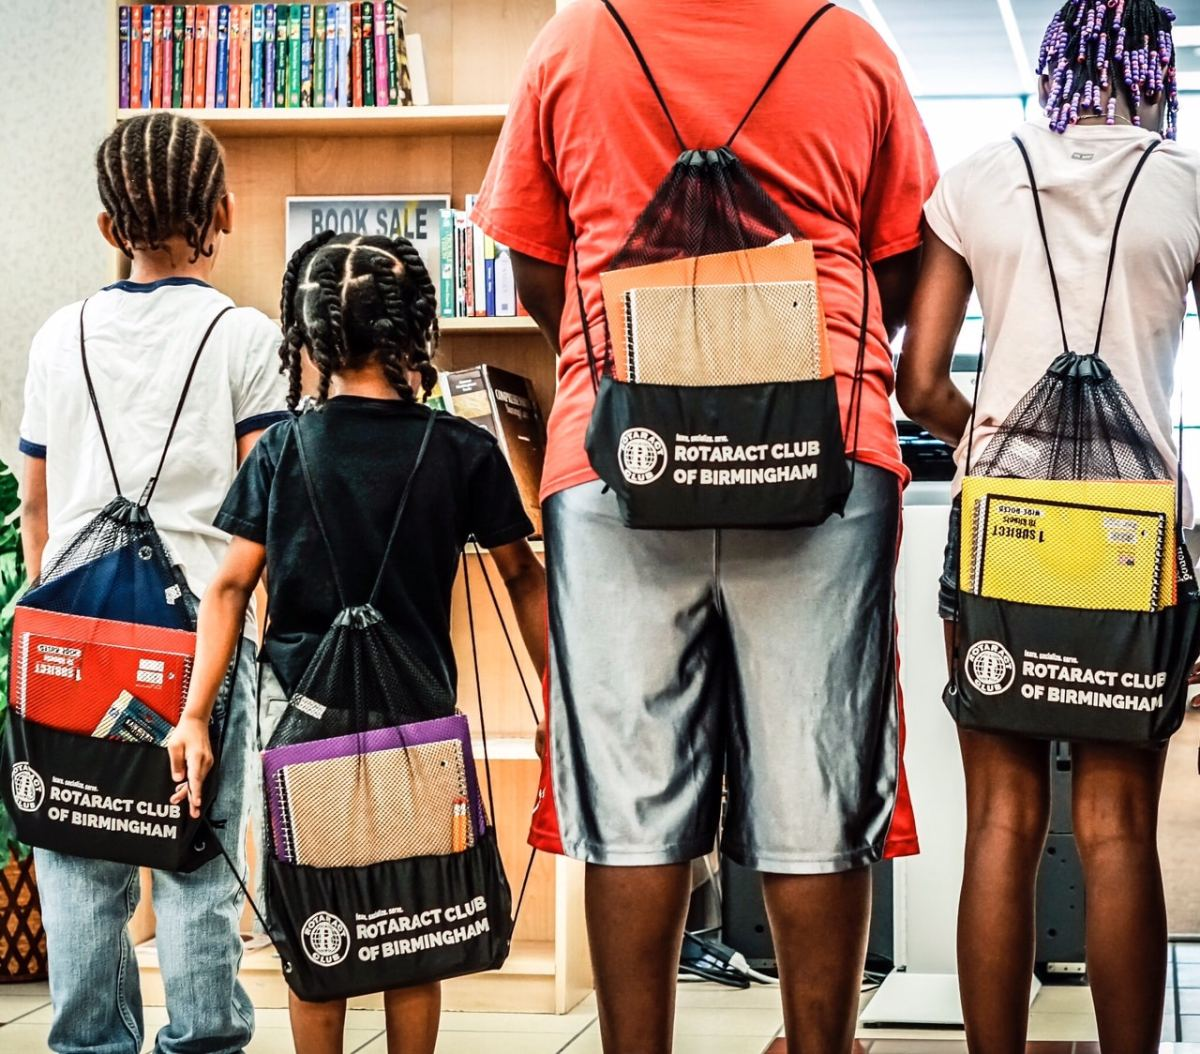 Don't miss The Rotaract Club of Birmingham school supplies giveaway